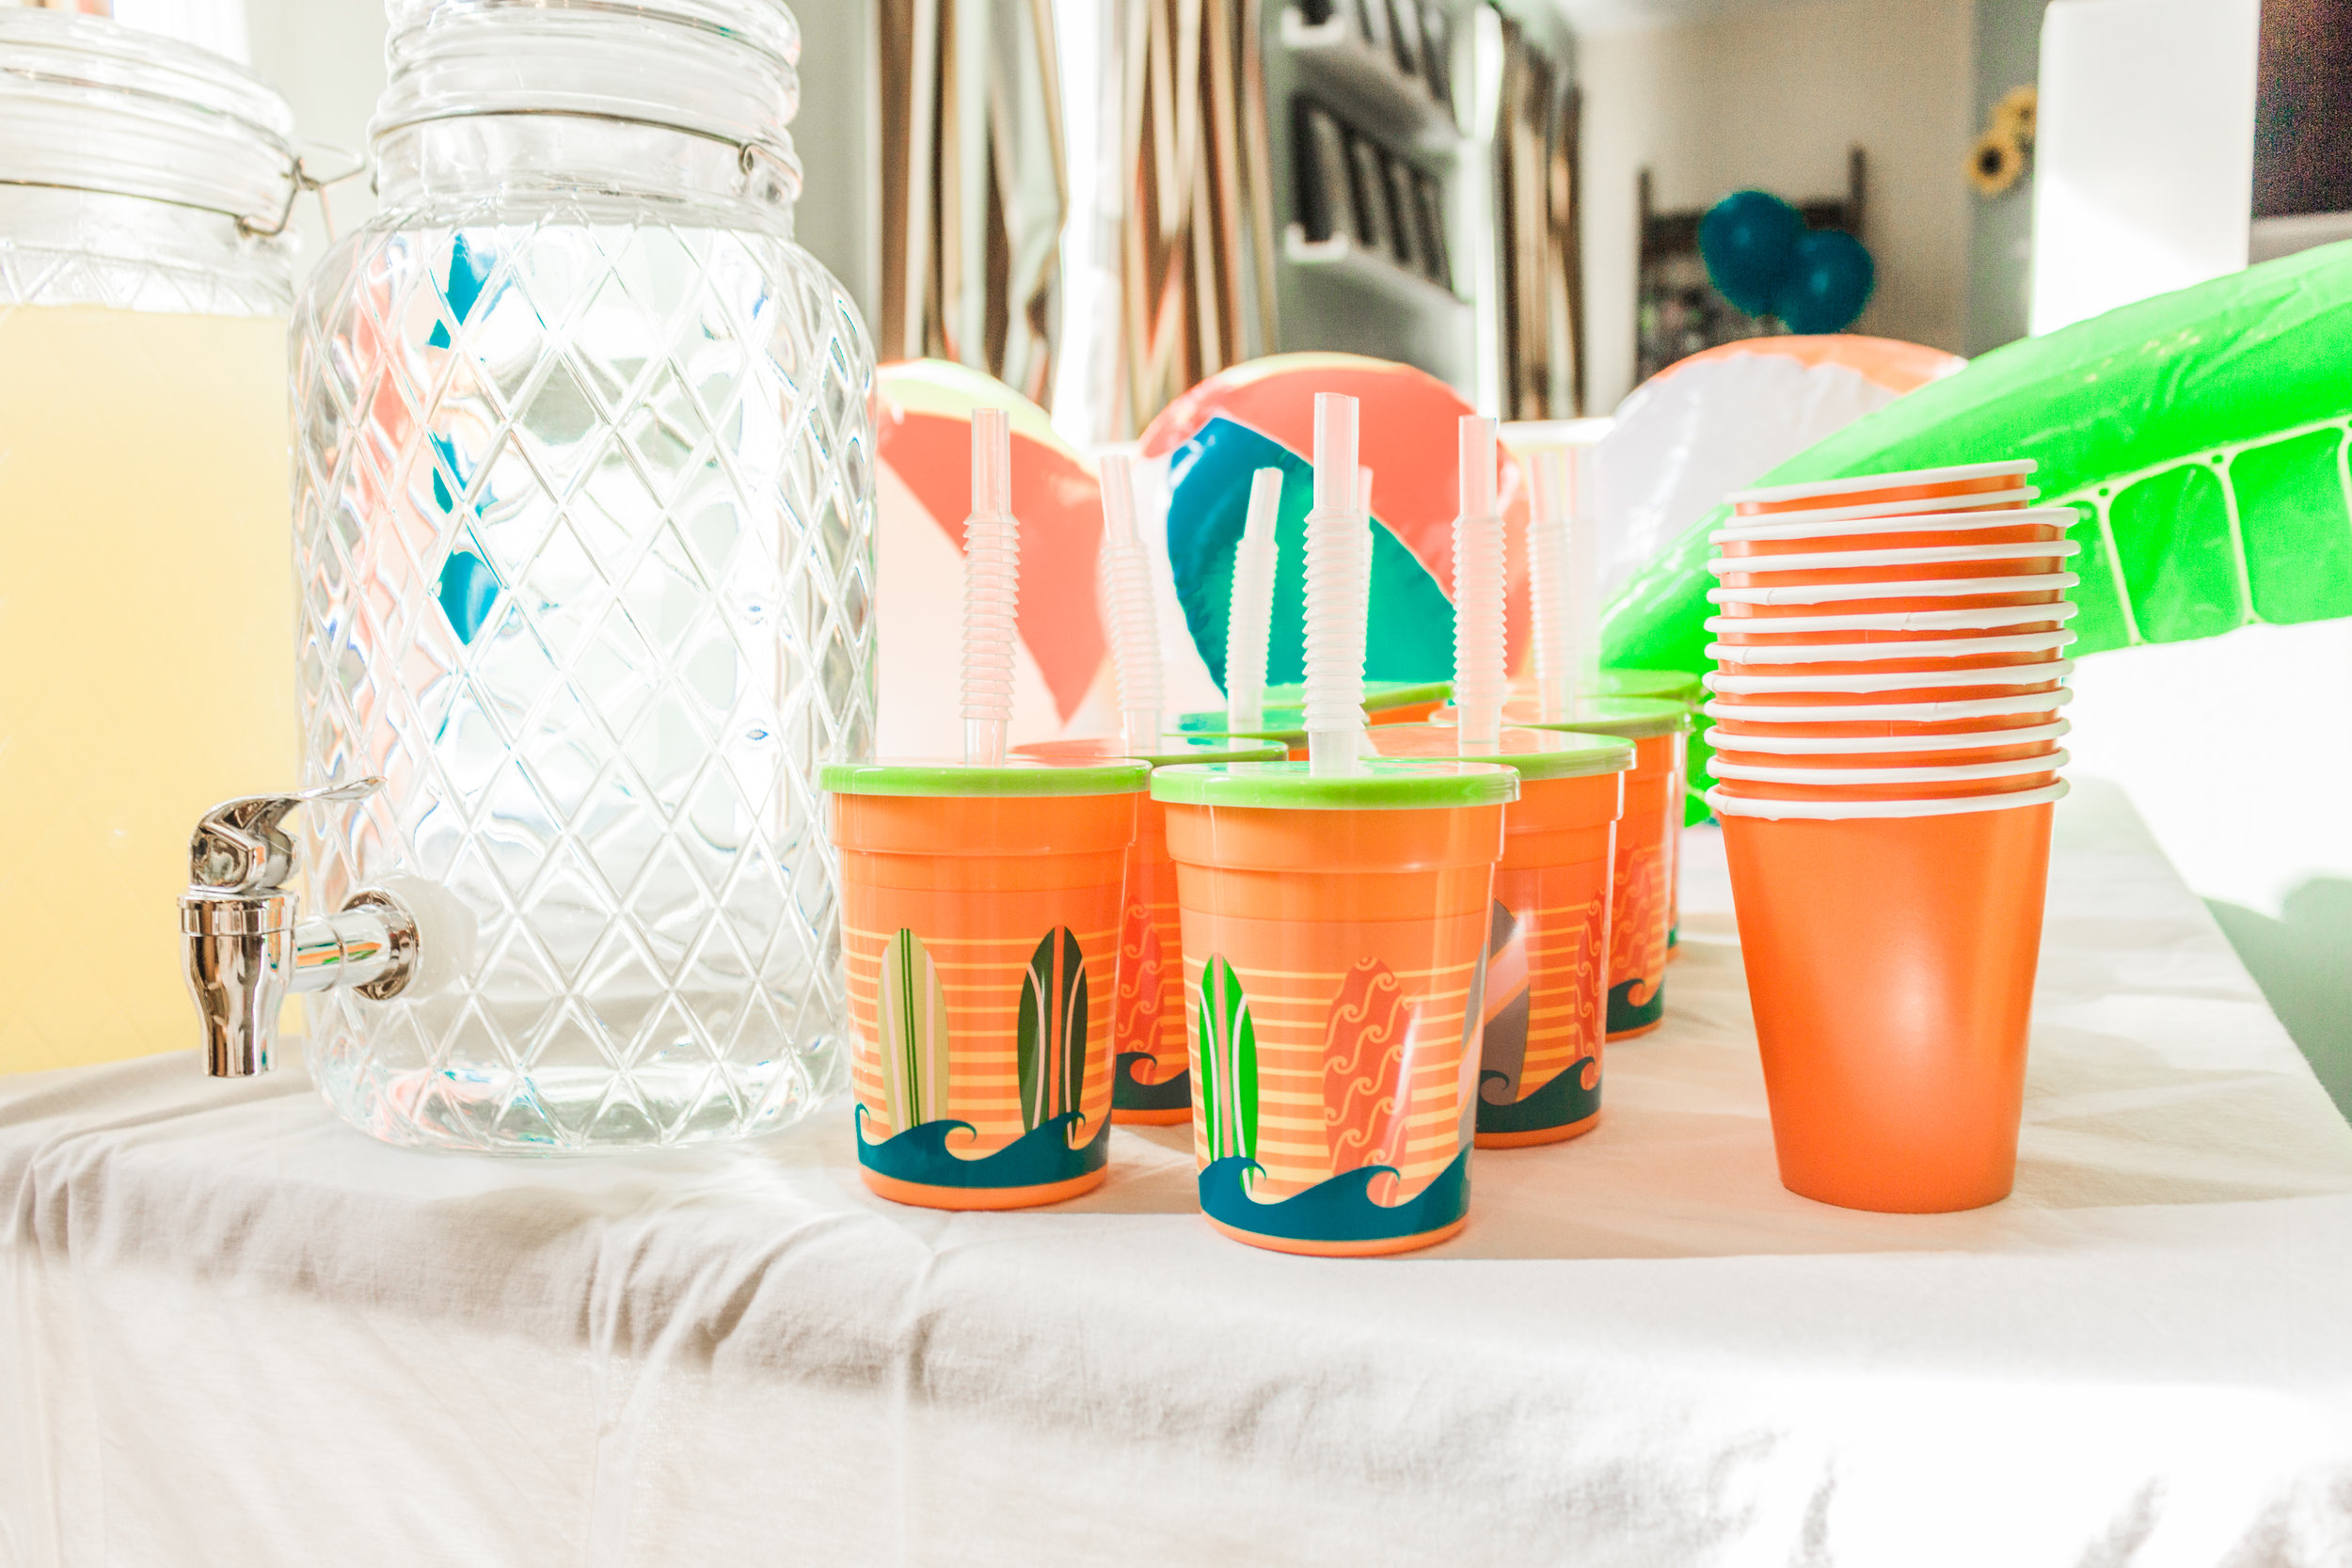 We had a pitcher of water and lemonade ready for the guests, along with  Surfs Up Cups with Straws  for the kids, and  Orange Paper Cups  for the adults!